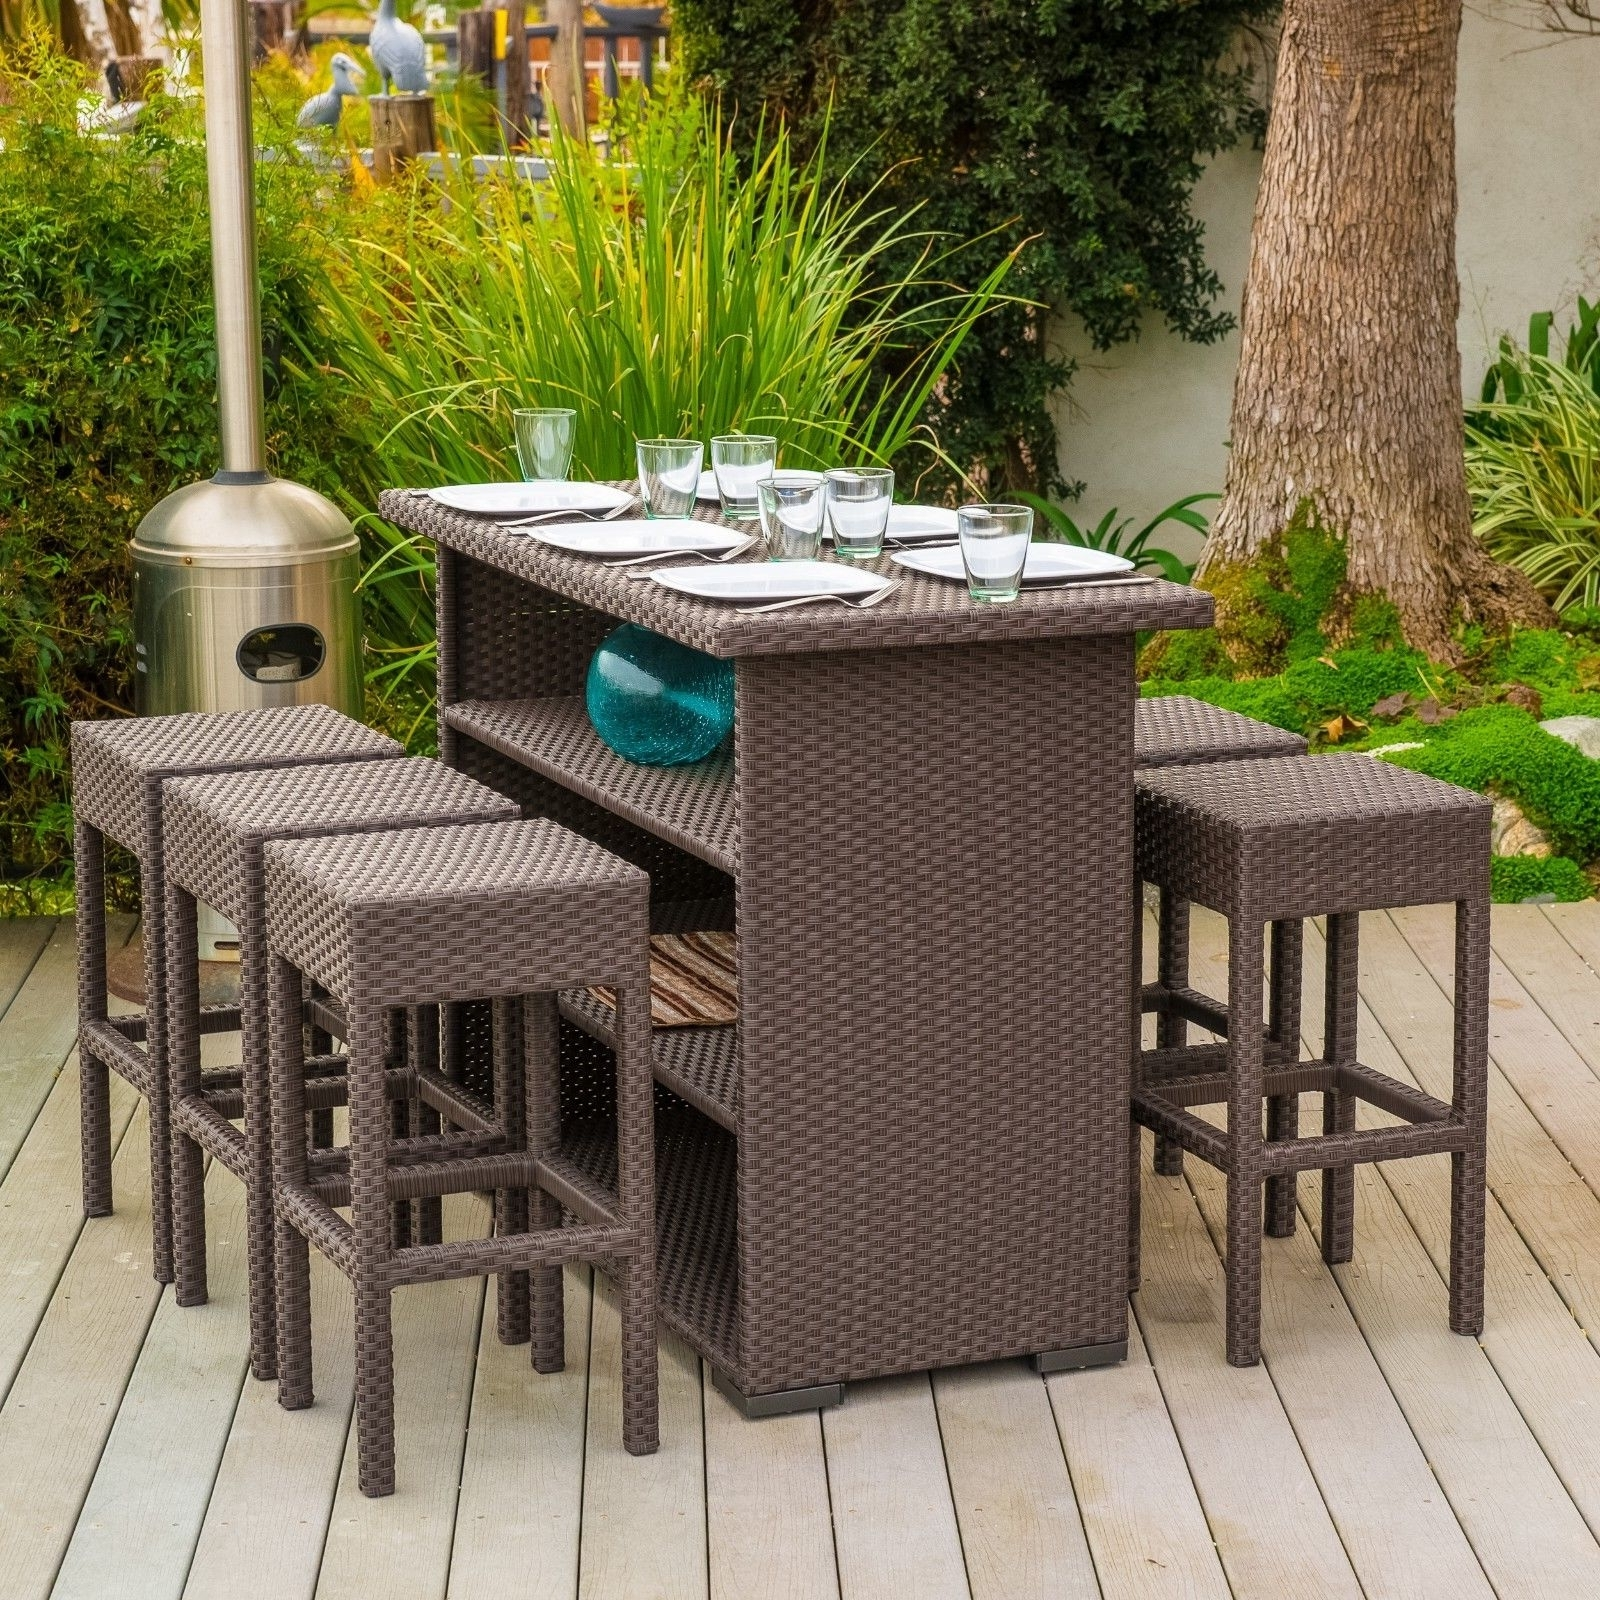 Furniture: Captivating Ebay Patio Furniture For Outdoor Furniture With Regard To Most Recently Released Ebay Patio Conversation Sets (View 12 of 15)